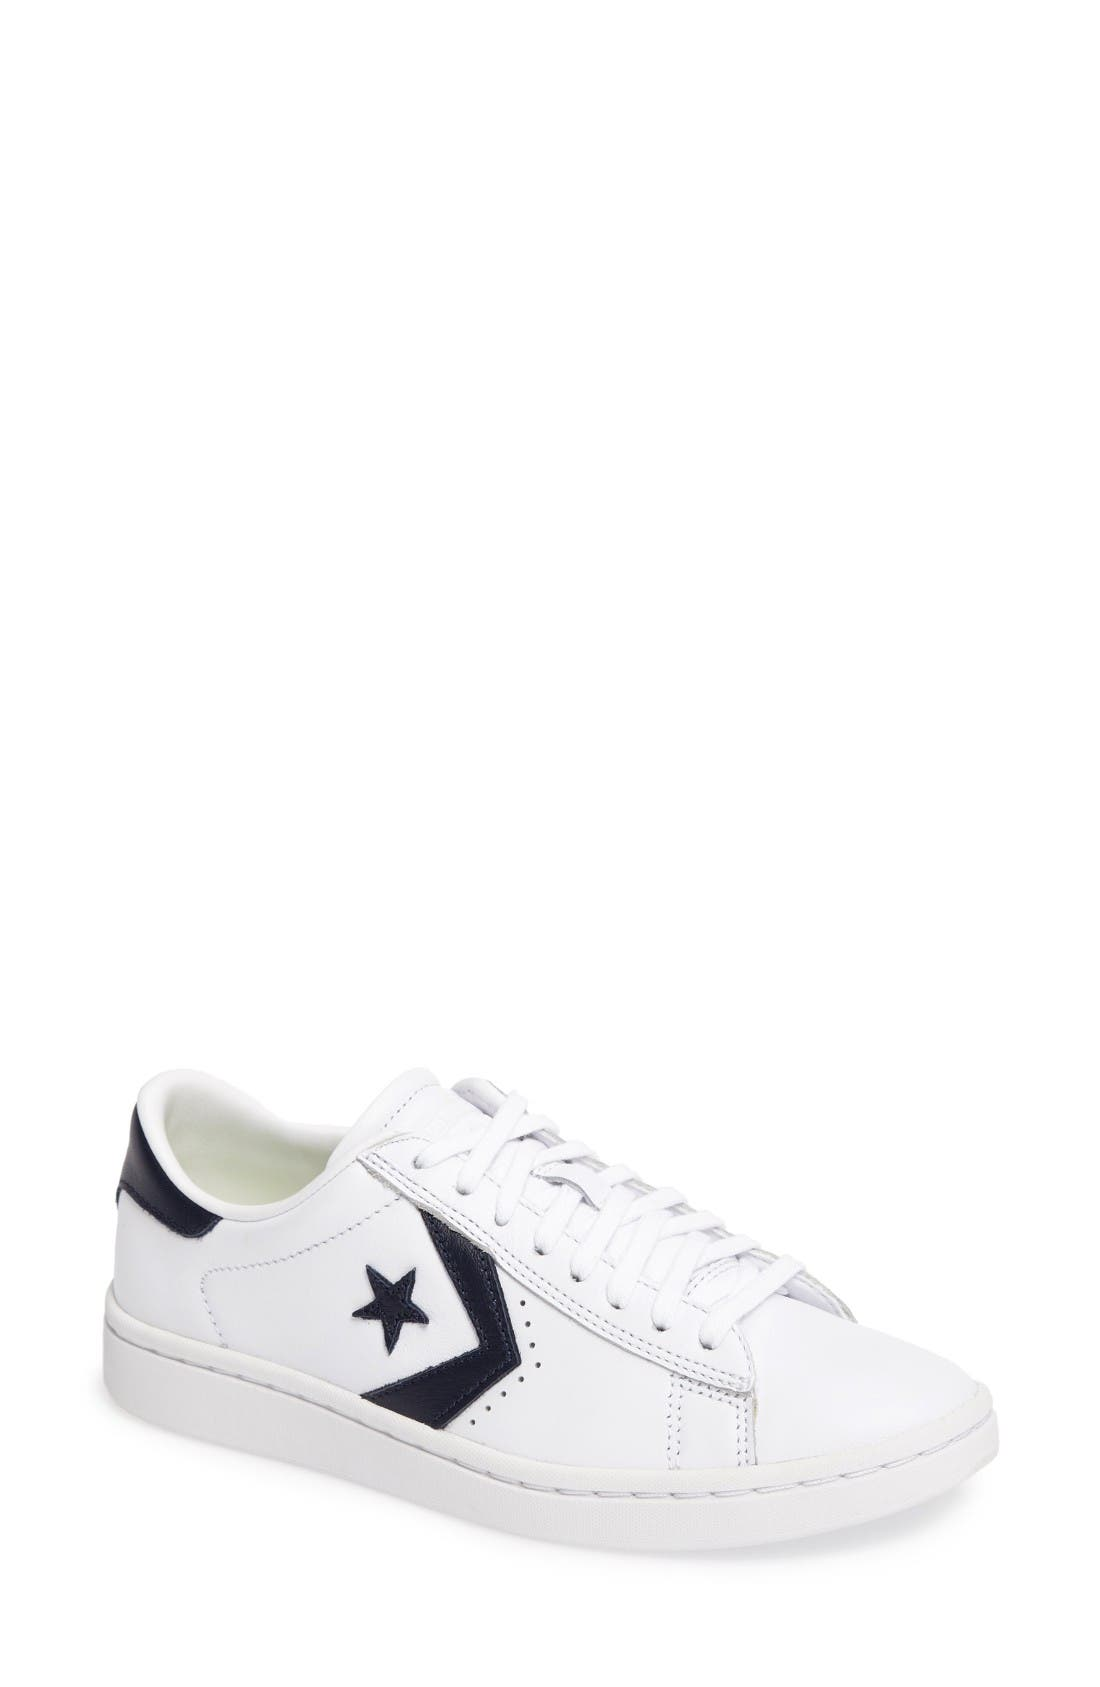 Main Image - Converse Pro Leather LP Sneaker (Women)